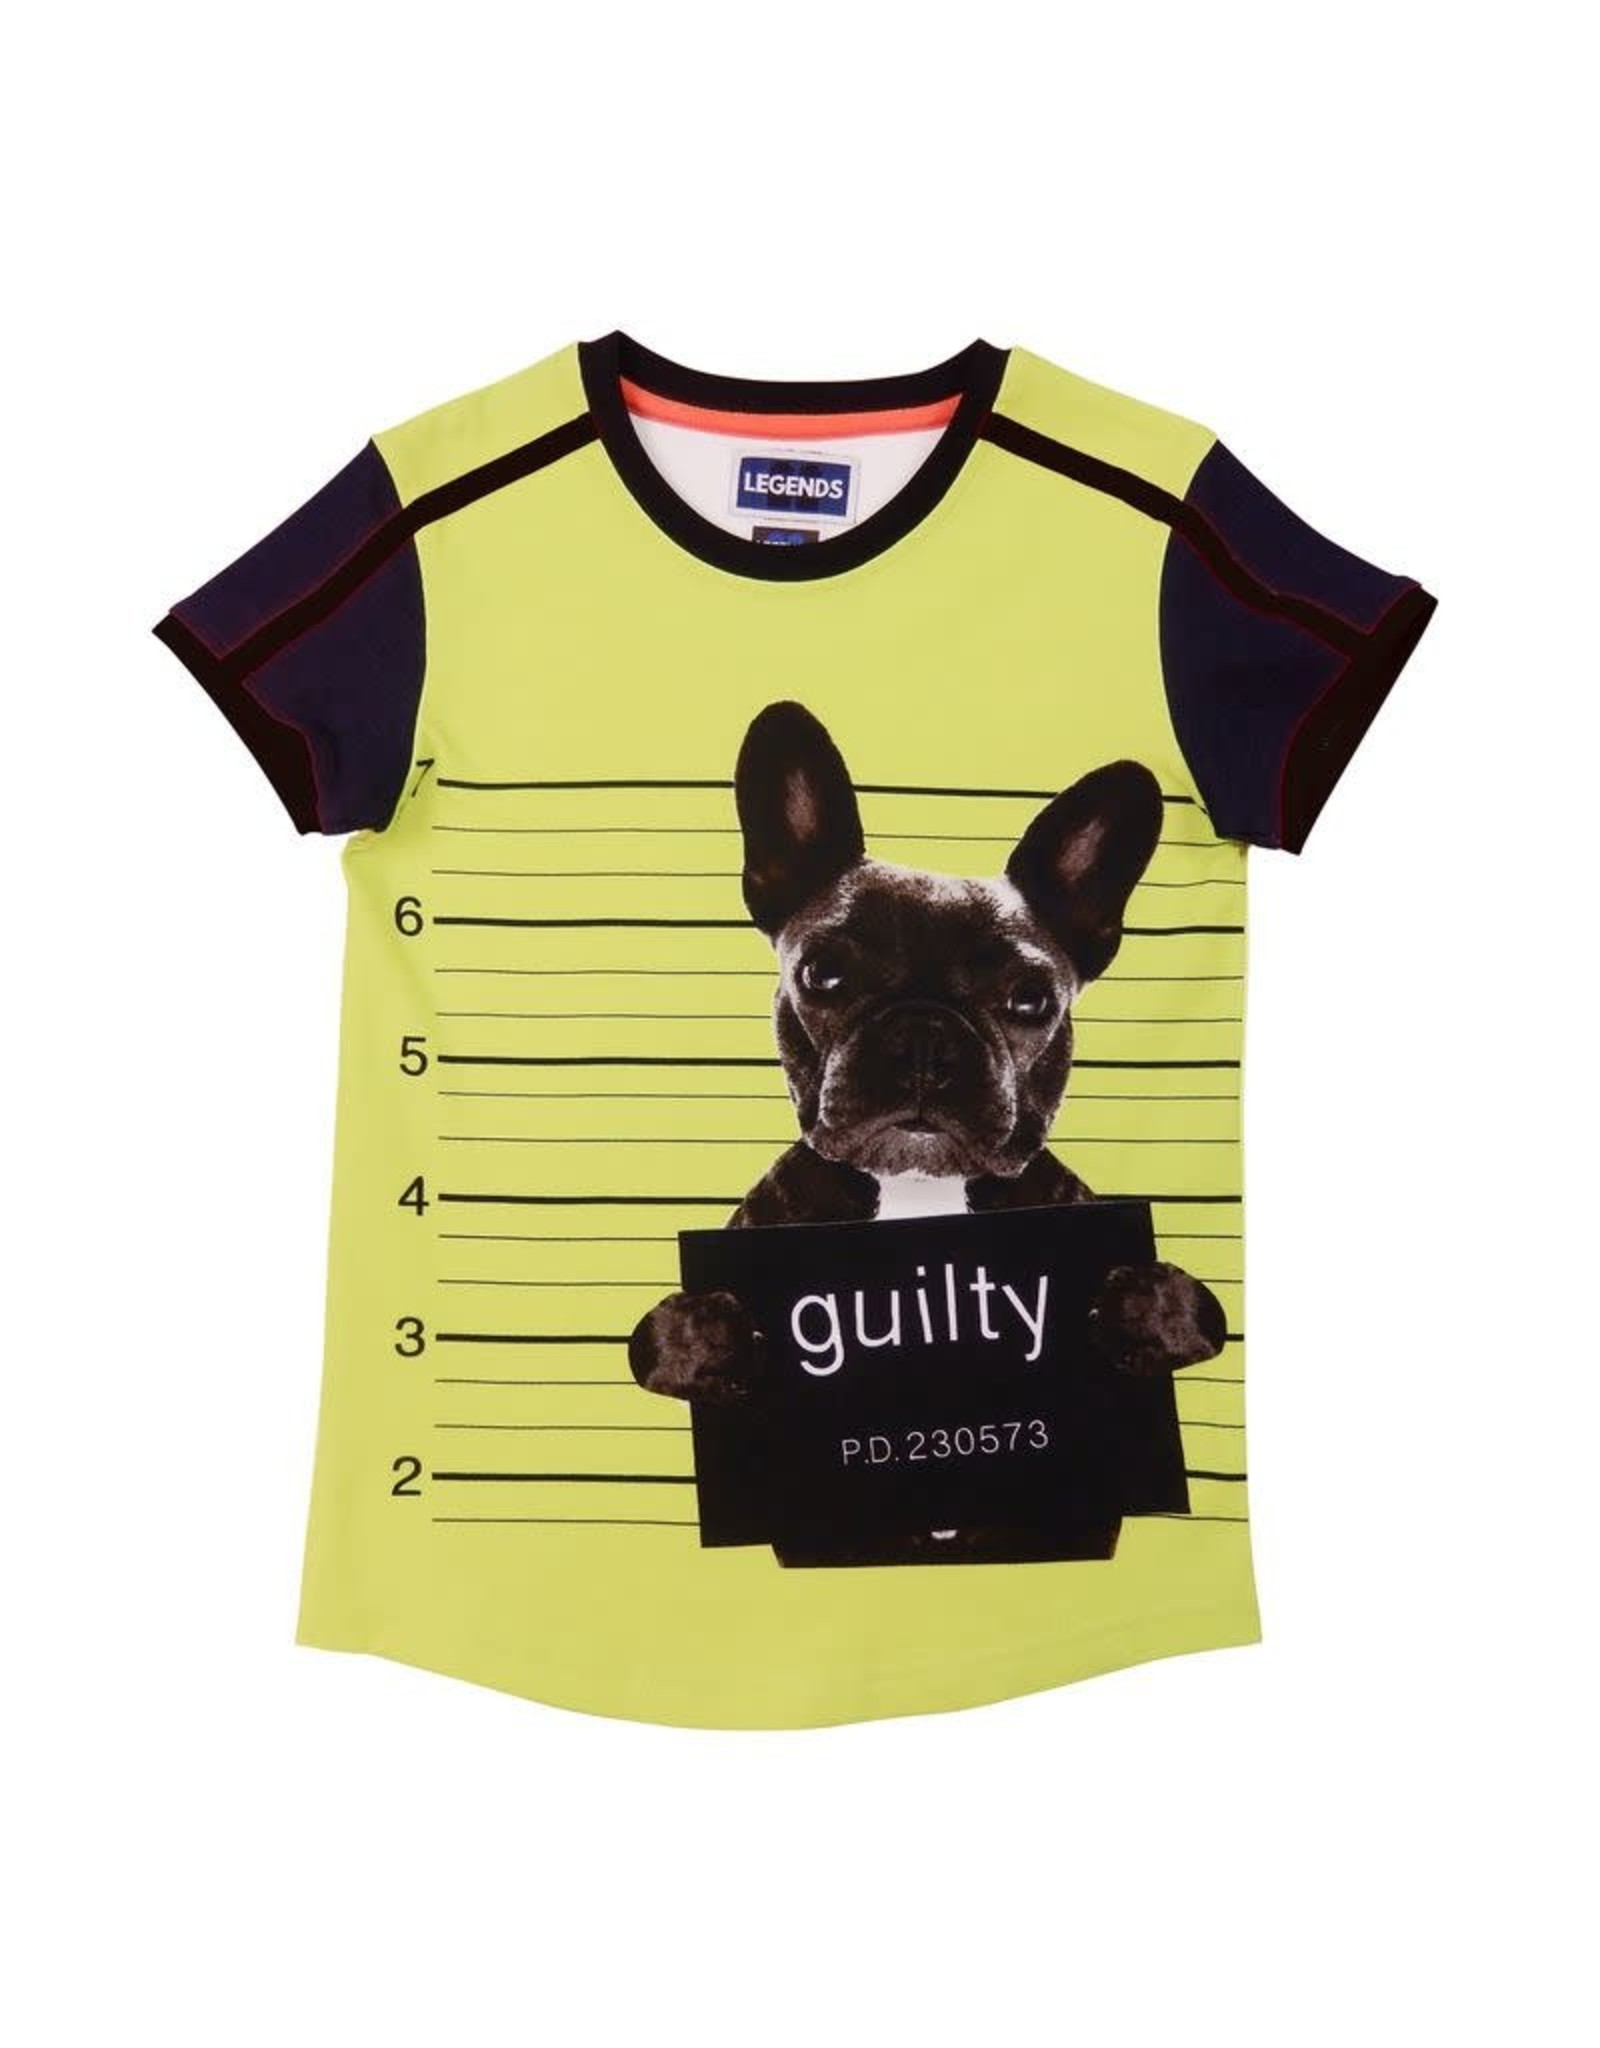 Legends22 Legends jongens t-shirt Guilty Bull-dog